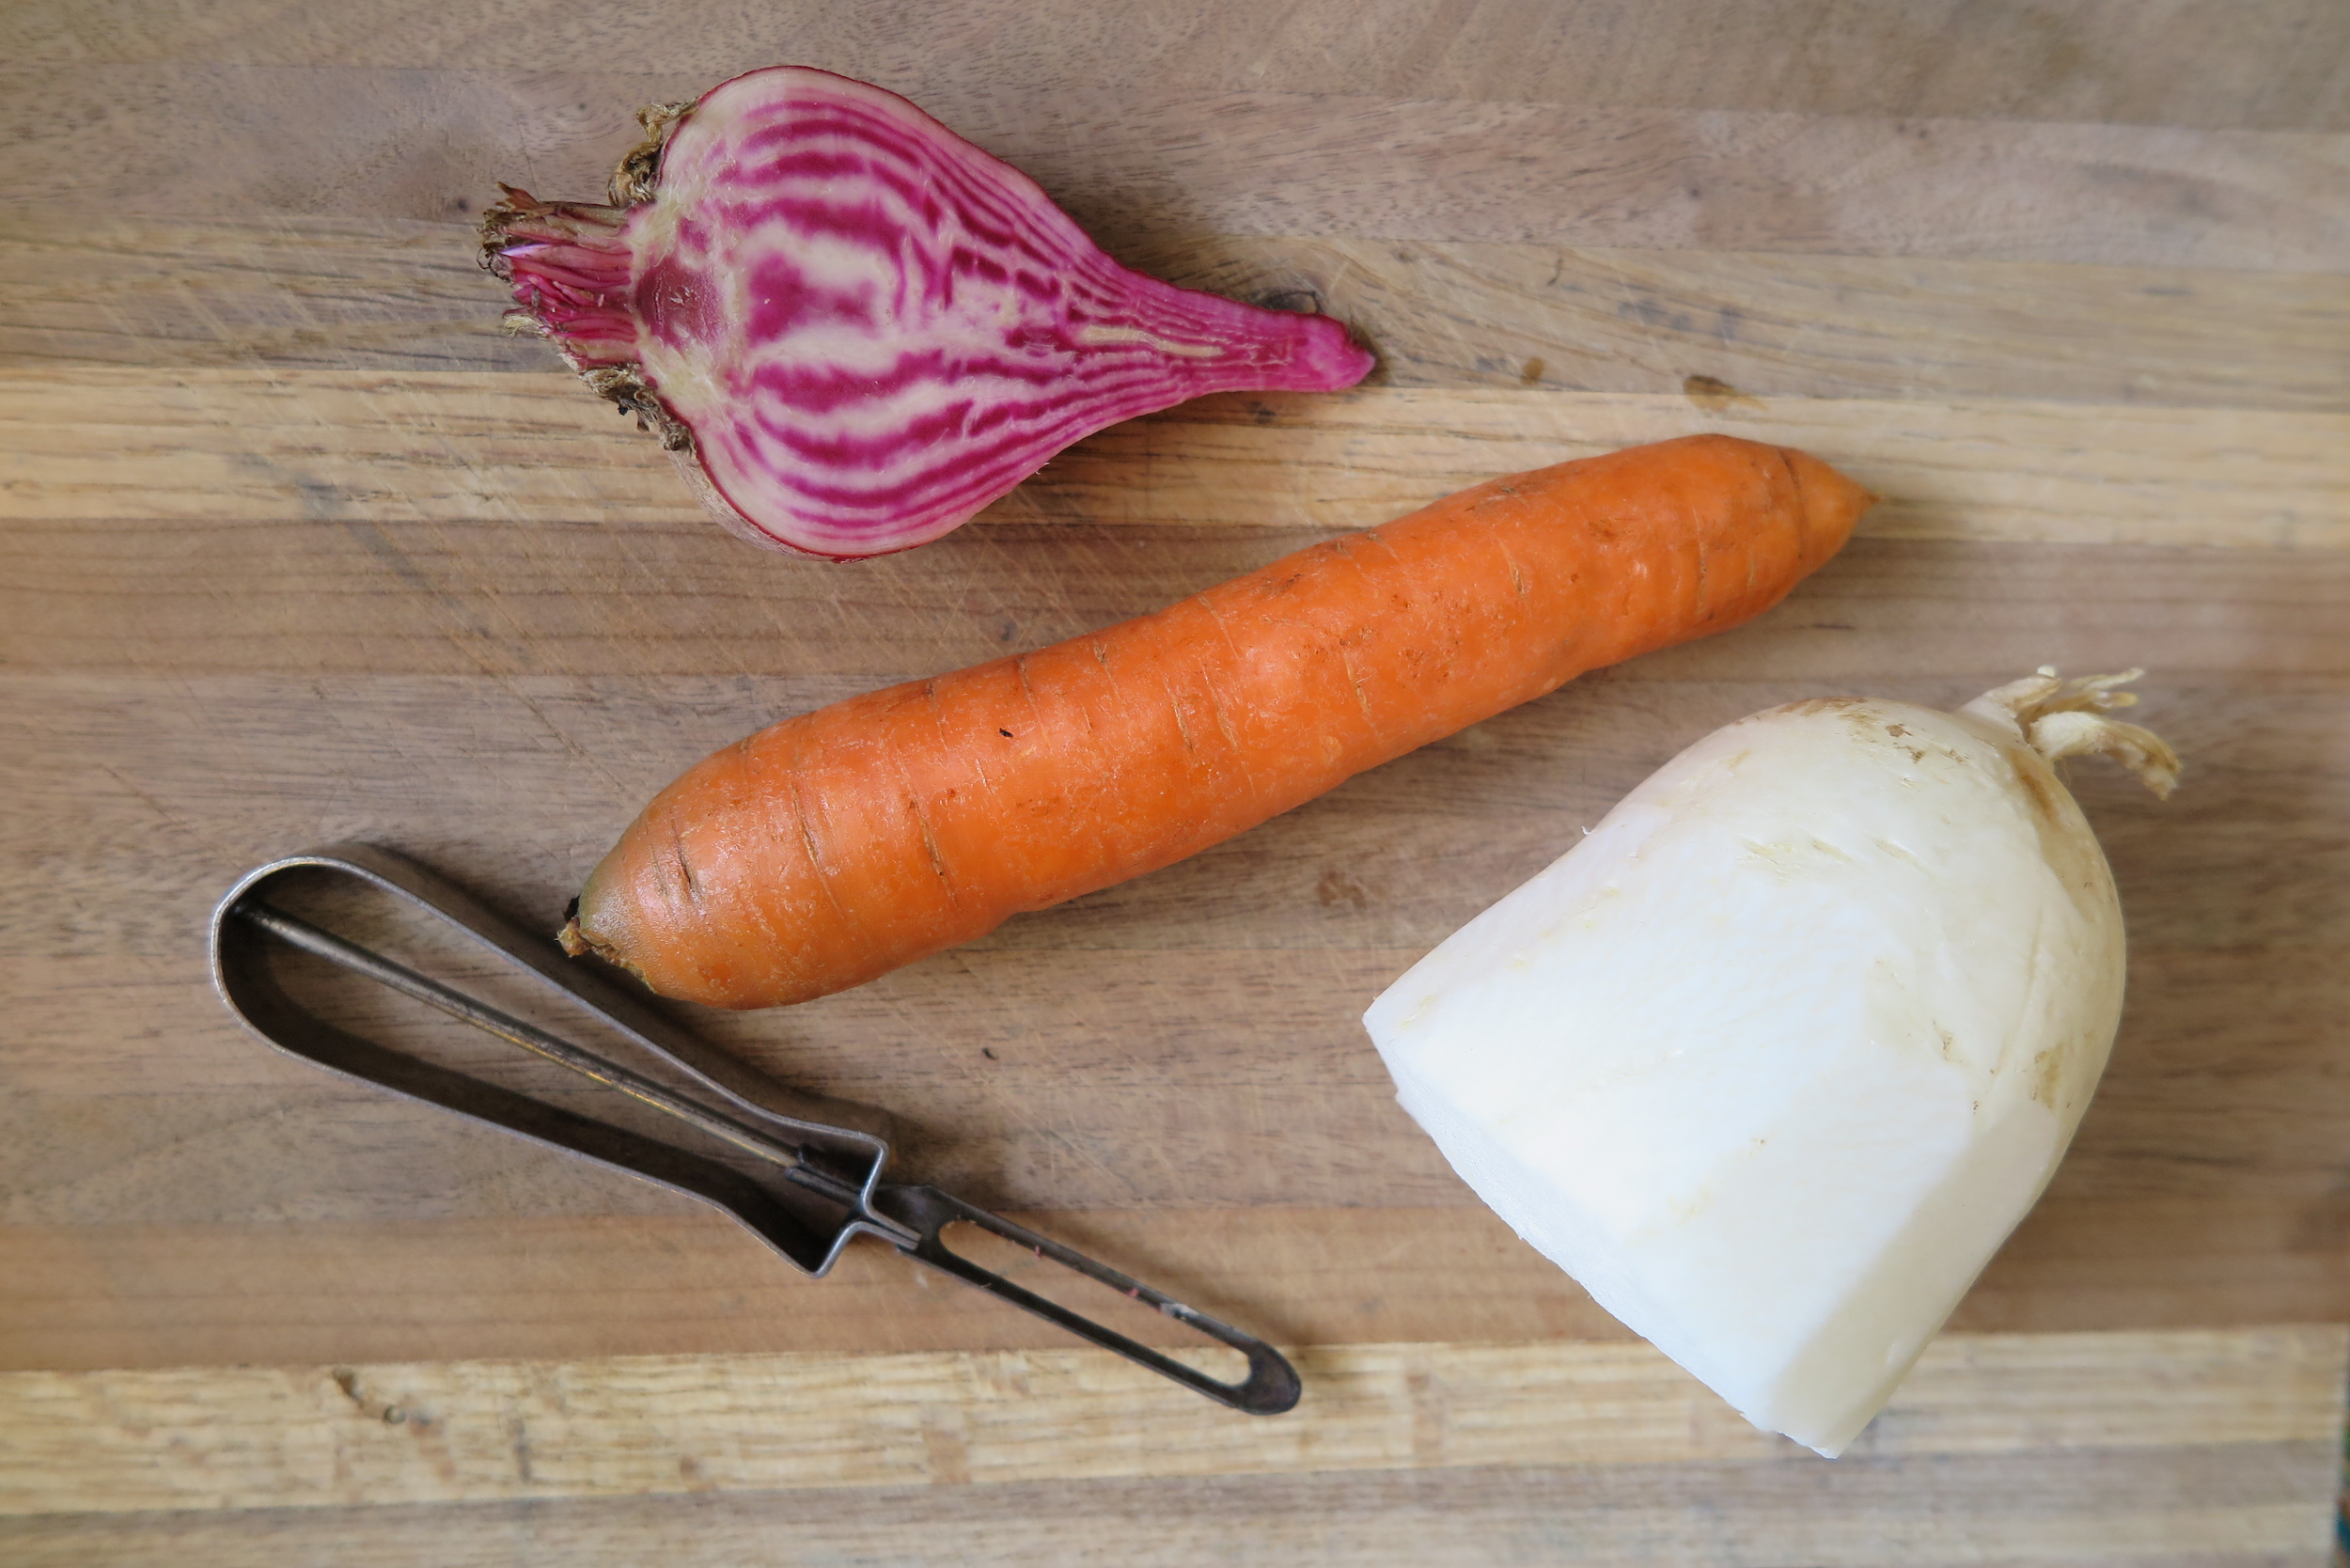 Two types of radishes and a carrot laying on a wooden cutting board ready to be peeled and chopped